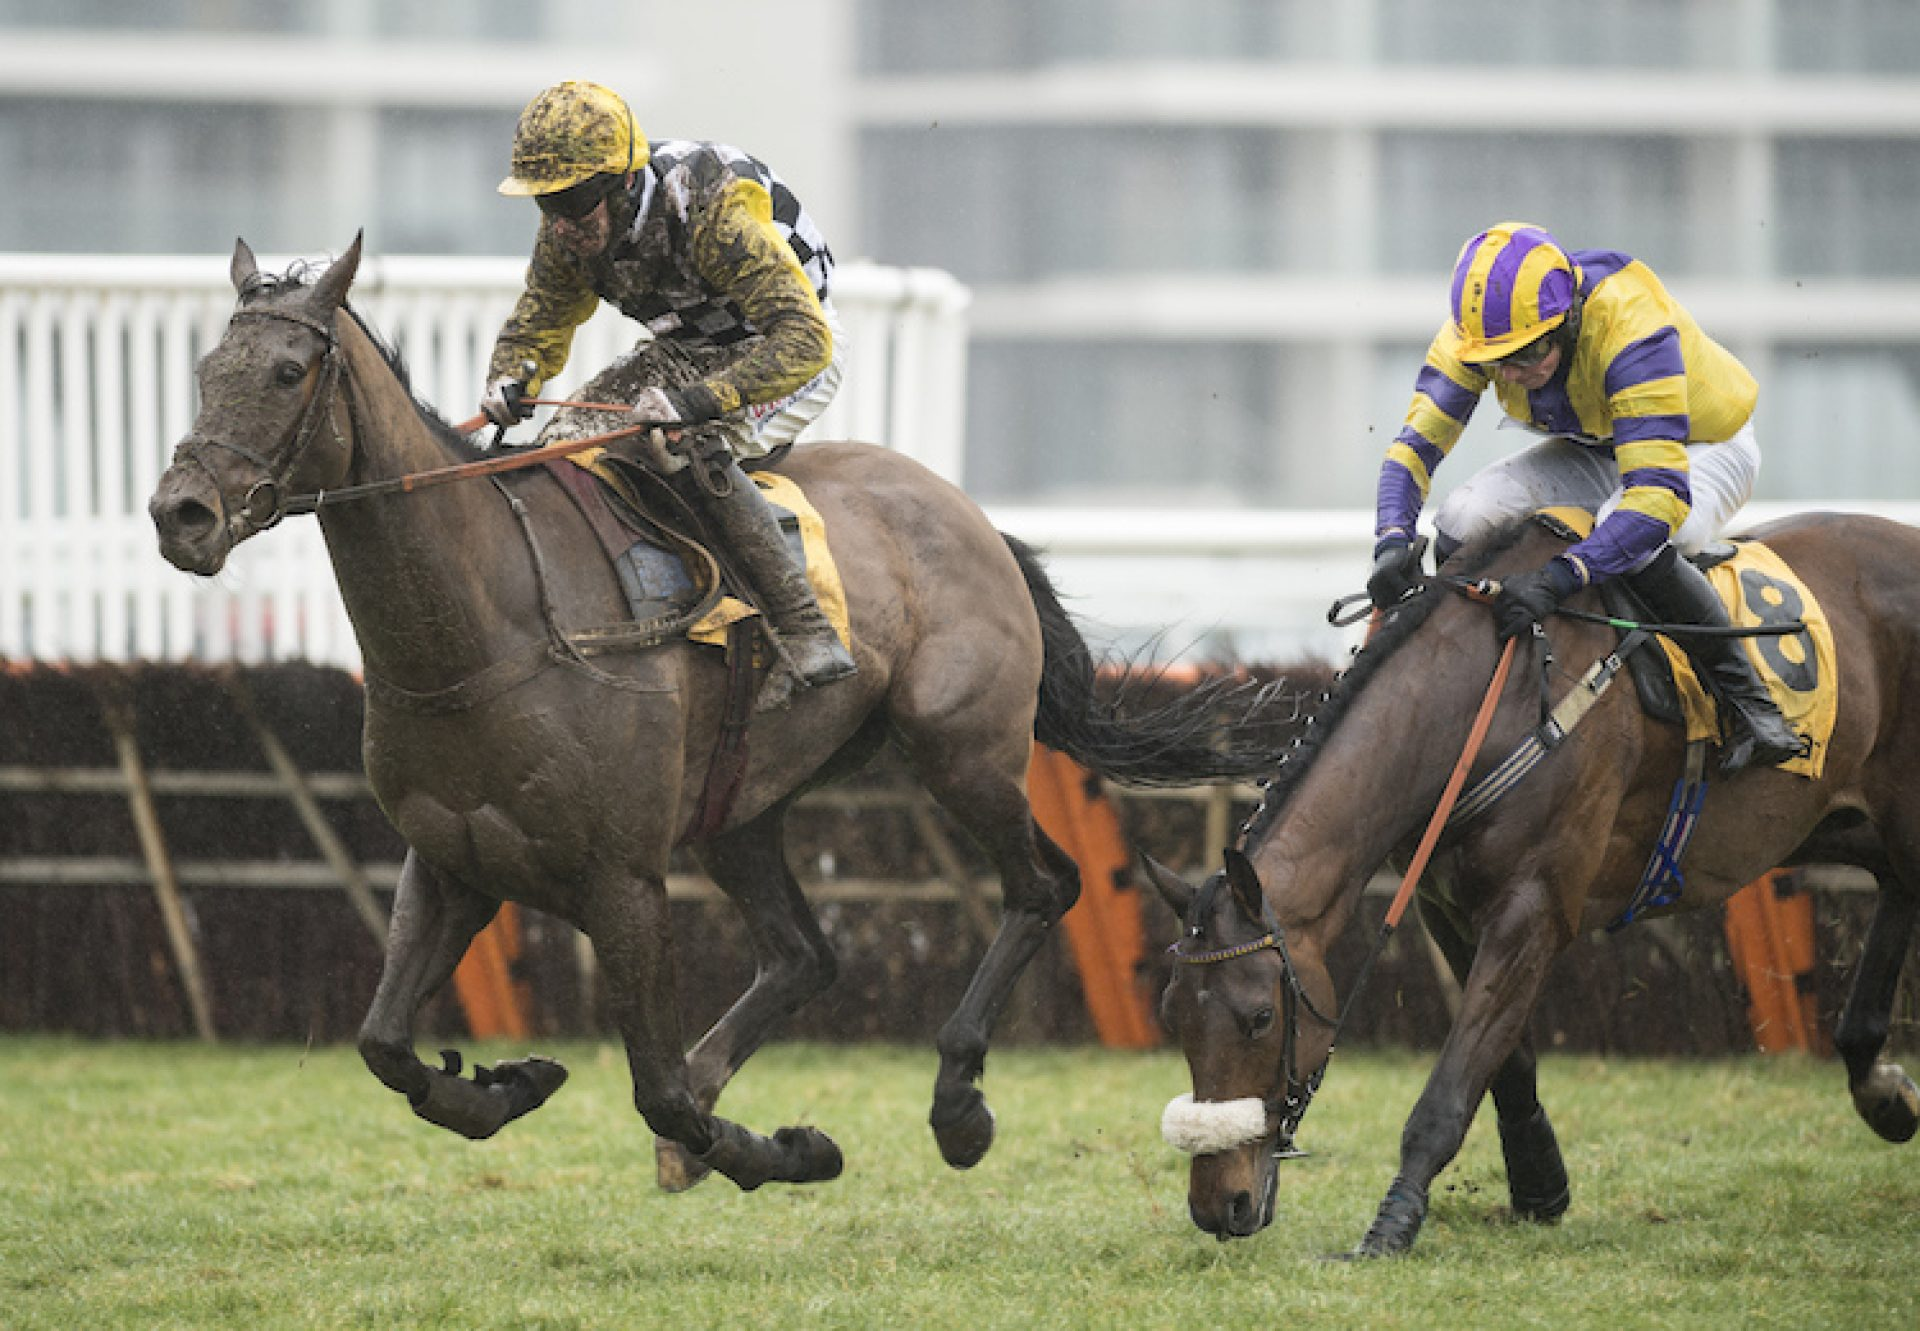 Talkischeap (Getaway) winning over hurdles at Newbury